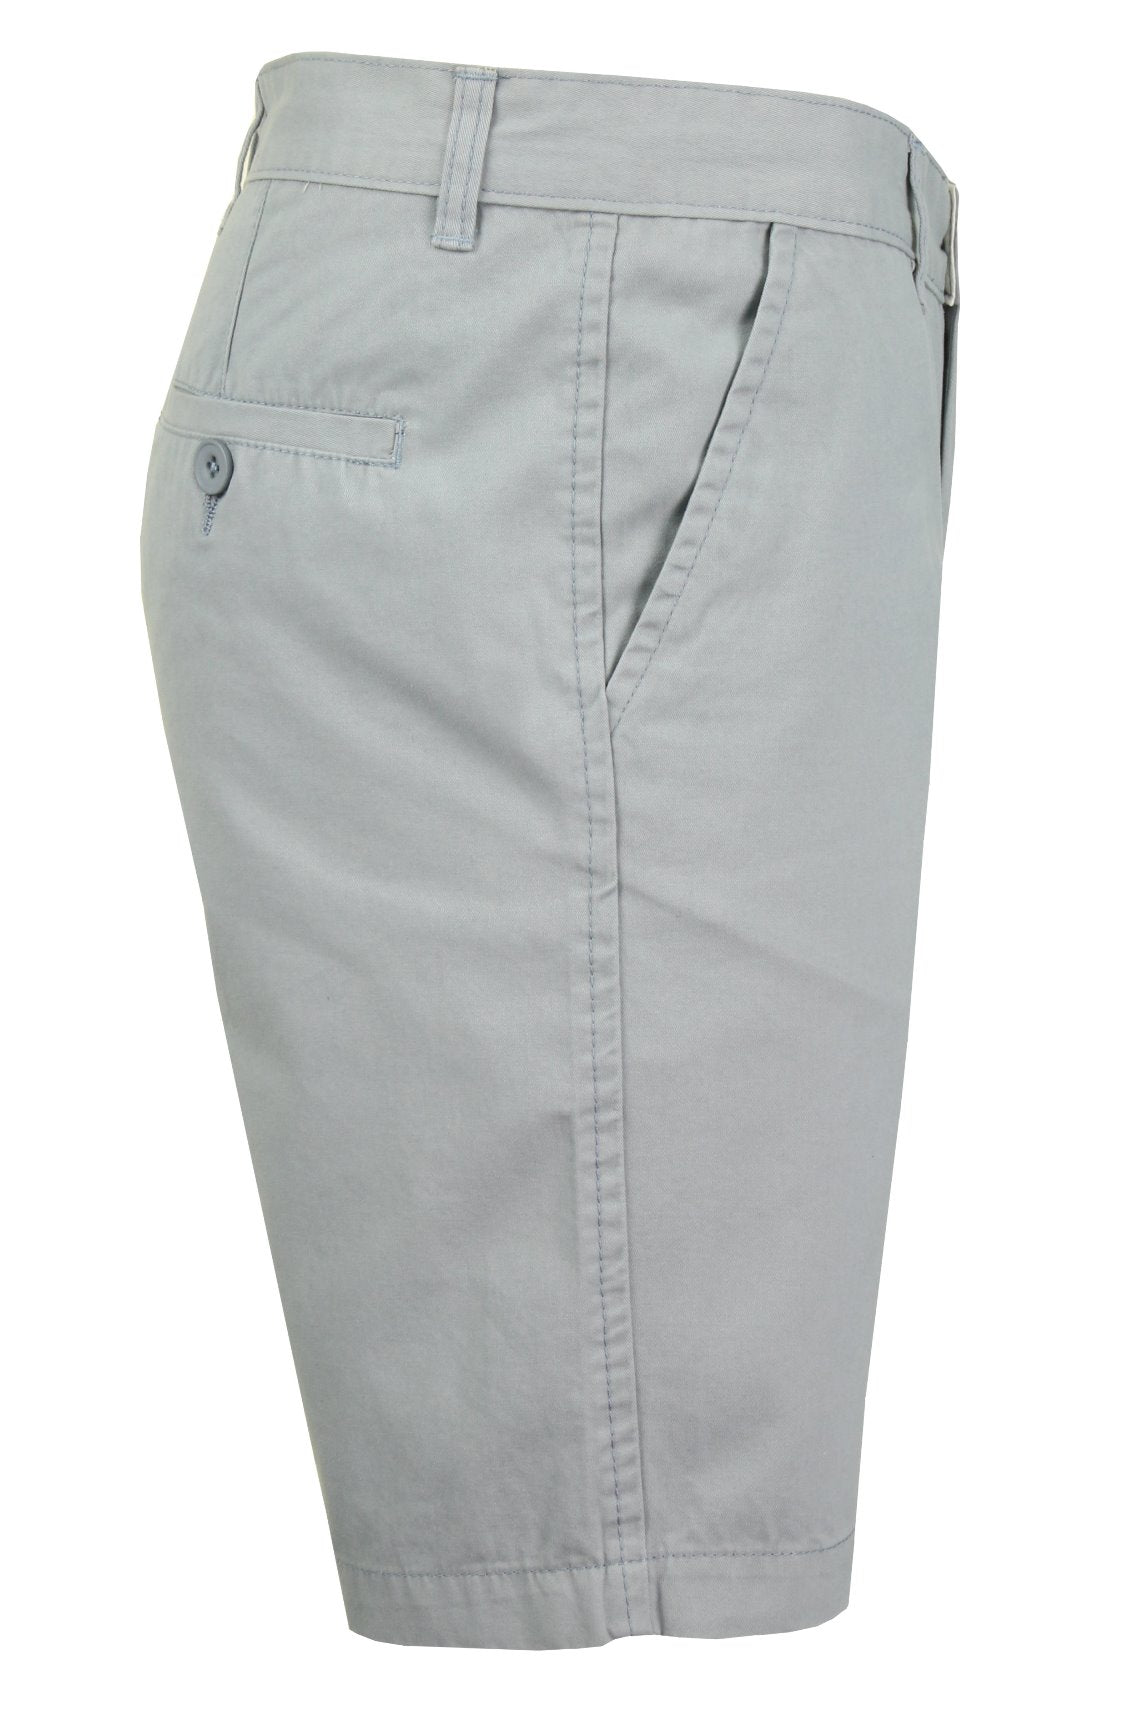 Xact Chino Shorts Mens Soft Feel Cotton Fashion Garment-2